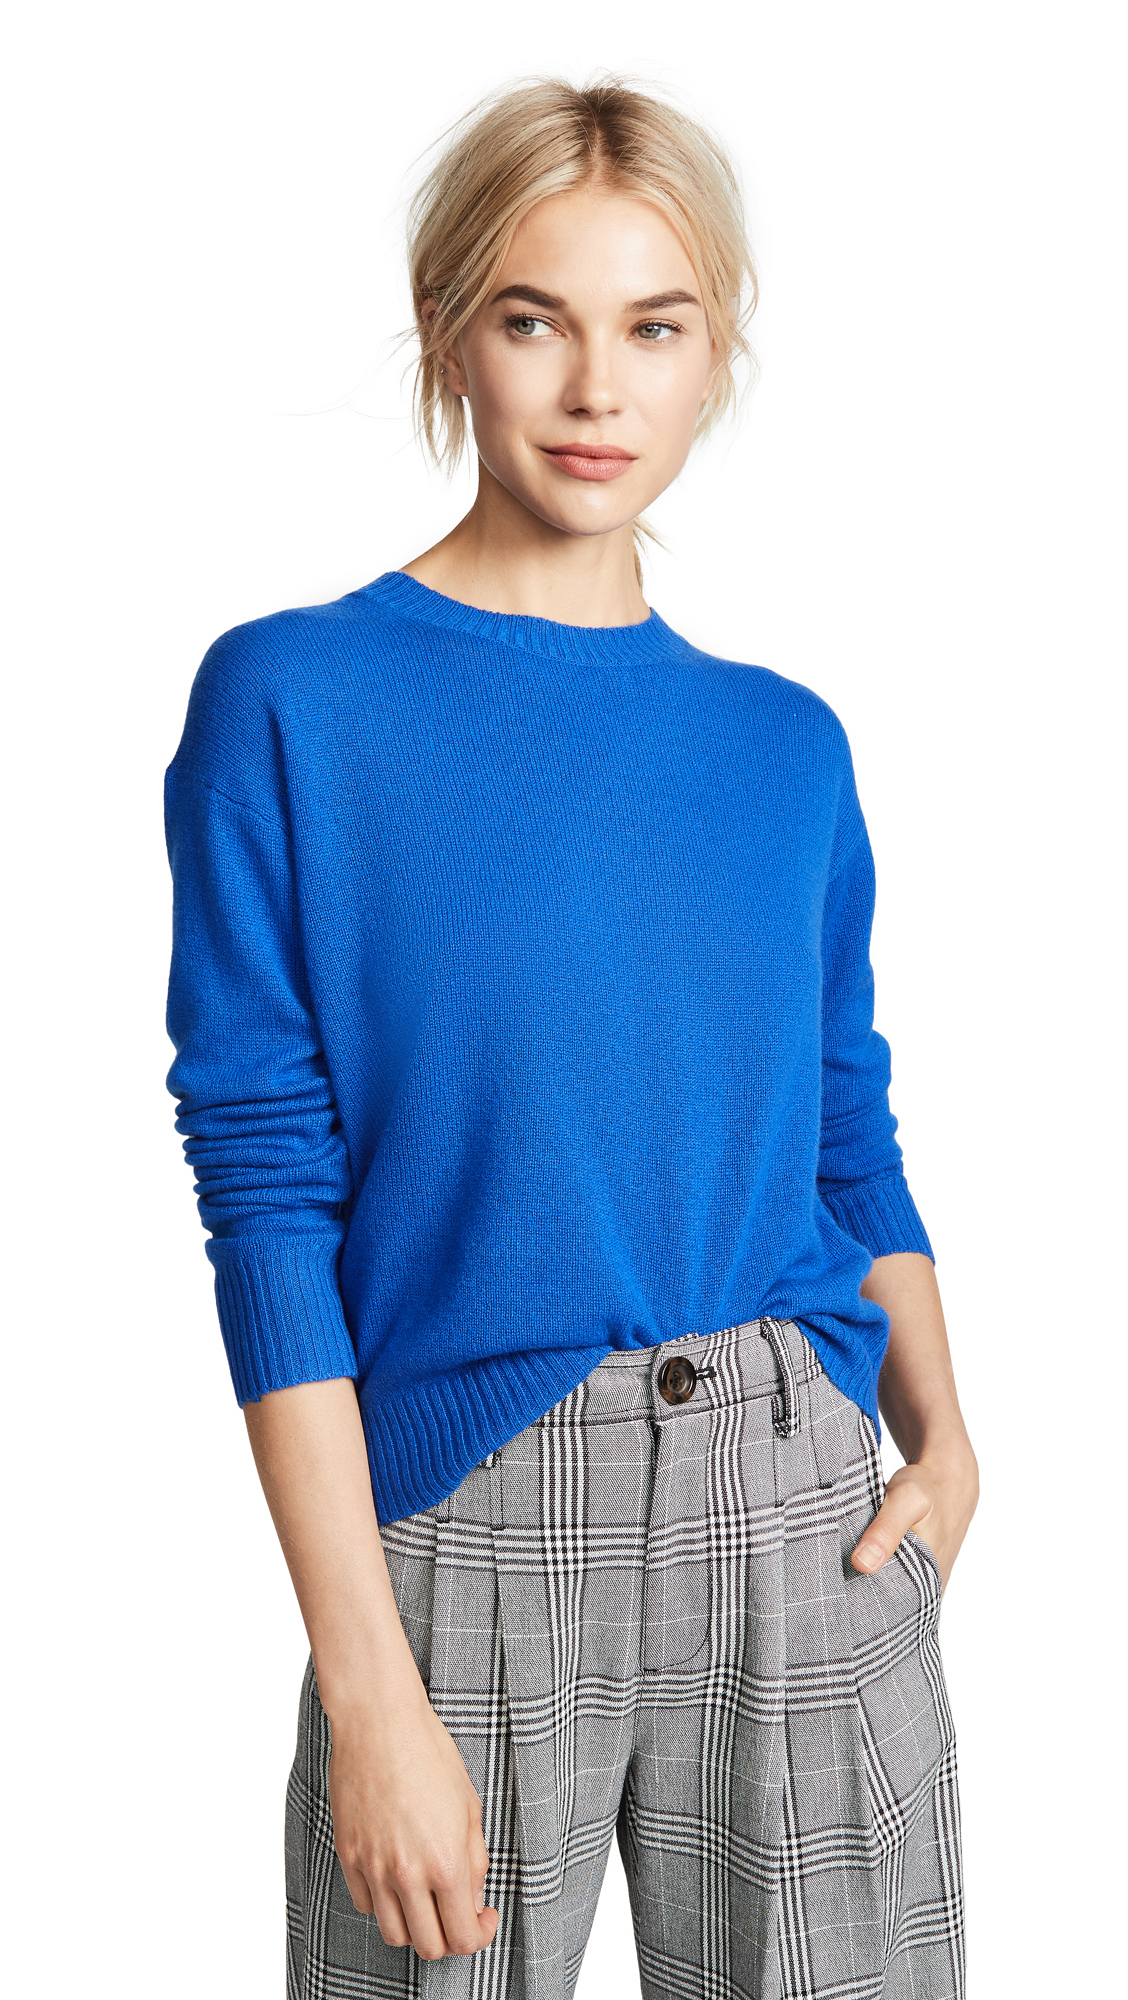 360 SWEATER Oumie Cashmere Sweater In Royal